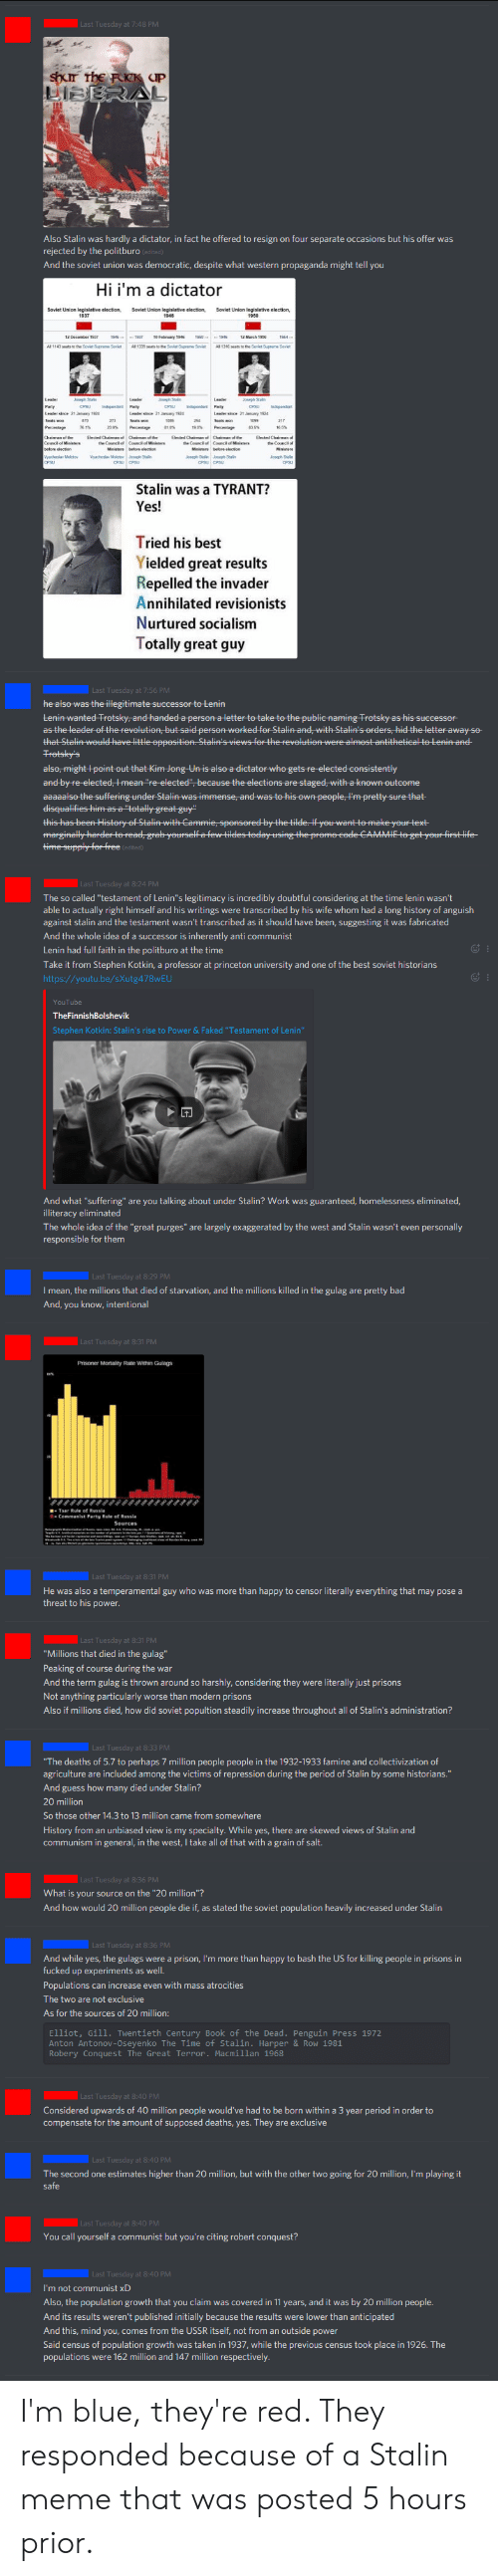 "Af, Bad, and Facepalm: Last Tuesday at 7:48 PM  Shur The FCK UP  LIBERAL  Also Stalin was hardly a dictator, in fact he offered to resign on four separate occasions but his offer was  rejected by the politburo (edited)  And the soviet union was democratic, despite what western propaganda might tell you  Hi i'm a dictator  inisters  Stalin was a TYRANT?  Yes!  Tried his best  Yielded great results  Repelled the invader  Annihilated revisionists  Nurtured socialism  Totally great guy  Last Tuesday at 7:56 PM  he alseo was the illegitimate sueeessor to Lenin  Lenin wanted Trotsky, and handed a person a letter to take to the publie-naming Tretsky as his Successor  as the leader of the revelution, but said person worked for Stalin and, with Stalin's orders, hid theletter away se  that Stalin would have little oppesition. Stalin's views for the revelution were almest antithetieal to Lenin and-  Fretsky's  also, might point out that Kim Jeng Un is also a dietator who gets-re elected consistently  and by re eleeted, Imean ""re eleeted"", beeause the eleetions are staged, with a known outeome  aaaaalso the suffering under Stalin was immense, and was to his own people, l'mpretty sure that  disqualifies him as a ""totally great guy""  this has been History of Stalin with Cammie, sponsored by the tilde. If you want to make your text-  marginally harder to read, grab yourself a few tildes today using the promo code CAMMIE to get your first life  time supply for free Cedited)  Last Tuesday at 8:24 PM  The so called ""testament of Lenin""s legitimacy is incredibly doubtful considering at the time lenin wasn't  able to actually right himself and his writings were transcribed by his wife whom had a long history of anguish  against stalin and the testament wasn't transcribed as it should have been, suggesting it was fabricated  And the whole idea of a successor is inherently anti communist  Lenin had full faith in the politbu ro at the time  Take it from Stephen Kotkin, a professor at princeton university and one of the best soviet historians  http://youtu.be/sXutg47 Bw EU  YouTube  TheFinnishBolshevik  Stephen Kotkin: Stalin's rise to Power & Faked ""Testament of Lenin""  And what ""suffering"" are you talking about under Stalin? Work was guaranteed, homelessness eliminated,  illiteracy eliminated  The whole idea of the ""great purges"" are largely exaggerated by the west and Stalin wasn't even personally  responsible for them  Last Tuesday at 8:29 PM  I mean, the millions that died of starvation, and the millions killed in the gulag are pretty bad  And, you know, intentional  Last Tuesday at 8:31 PM  Prisoner Mortality Rate Within Gulags  Tsar Rule af Russia  Last Tuesday at 8:31 PM  He was also a temperamental guy who was more than happy to censor literally everything that may pose a  threat to his power.  Last Tuesday at 8:31 PM  ""Millions that died in the gulag""  Peaking of course during the war  And the term gulag is thrown around so harshly, considering they were literally just prisons  Not anything particularly worse than modern prisons  Also if millions died, how did soviet popultion steadily increase throughout all of Stalin's administration?  Last Tuesday at 8:33 PM  .""The deaths of 5.7 to perhaps 7 million people people in the 1932-1933 famine and collectivization of  agriculture are included among the victims of repression during the period of Stalin by some historians.""  And guess how many died under Stalin?  20 million  So those other 14.3 to 13 million came from somewhere  History from an unbiased view is my specialty. While yes, there are skewed views of Stalin and  communism in general, in the west, I take all of that with a grain of salt.  Last Tuesday at 8:36 PM  What is your source on the ""20 million""?  And how would 20 million people die if, as stated the soviet population heavily increased under Stalin  Last Tuesday at 8:36 PM  And while yes, the gulags were a prison, I'm more than happy to bash the US for killing people in prisons in  fucked up experiments as well.  Populations can increase even with mass atrocities  The two are not exclusive  As for the sources of 20 million:  Elliot, Gill. Twentieth Century Book of the Dead. Penguin Press 1972  Anton Antonov - Os eyenko The Time of Stalin. Harper & Row 1981  Robery Conquest The Great Terror. Macmillan 1968  Last Tuesday at 8:40 PM  Considered upwards of 40 million people would've had to be born within a 3 year period in order to  compensate for the amount of supposed deaths,yes. They are exclusive  Last Tuesday at 8:40 PM  The second one estimates higher than 20 million, but with the other two going for 20 million, I'm playing it  safe  Last Tuesday at 8:40 PM  You call yourself a communist but you're citing robert conquest?  Last Tuesday at 8:40 PM  I'm not communist xD  Also, the population growth that you claim was covered in 11 years, and it was by 20 million people.  And its results weren't published initially because the results were lower than anticipated  And this, mind you, comes from the USSR itself, not from an outside power  Said census of population growth was taken in 1937, while the previous census took place in 1926. The  populations were 162 million and 147 million respectively I'm blue, they're red. They responded because of a Stalin meme that was posted 5 hours prior."